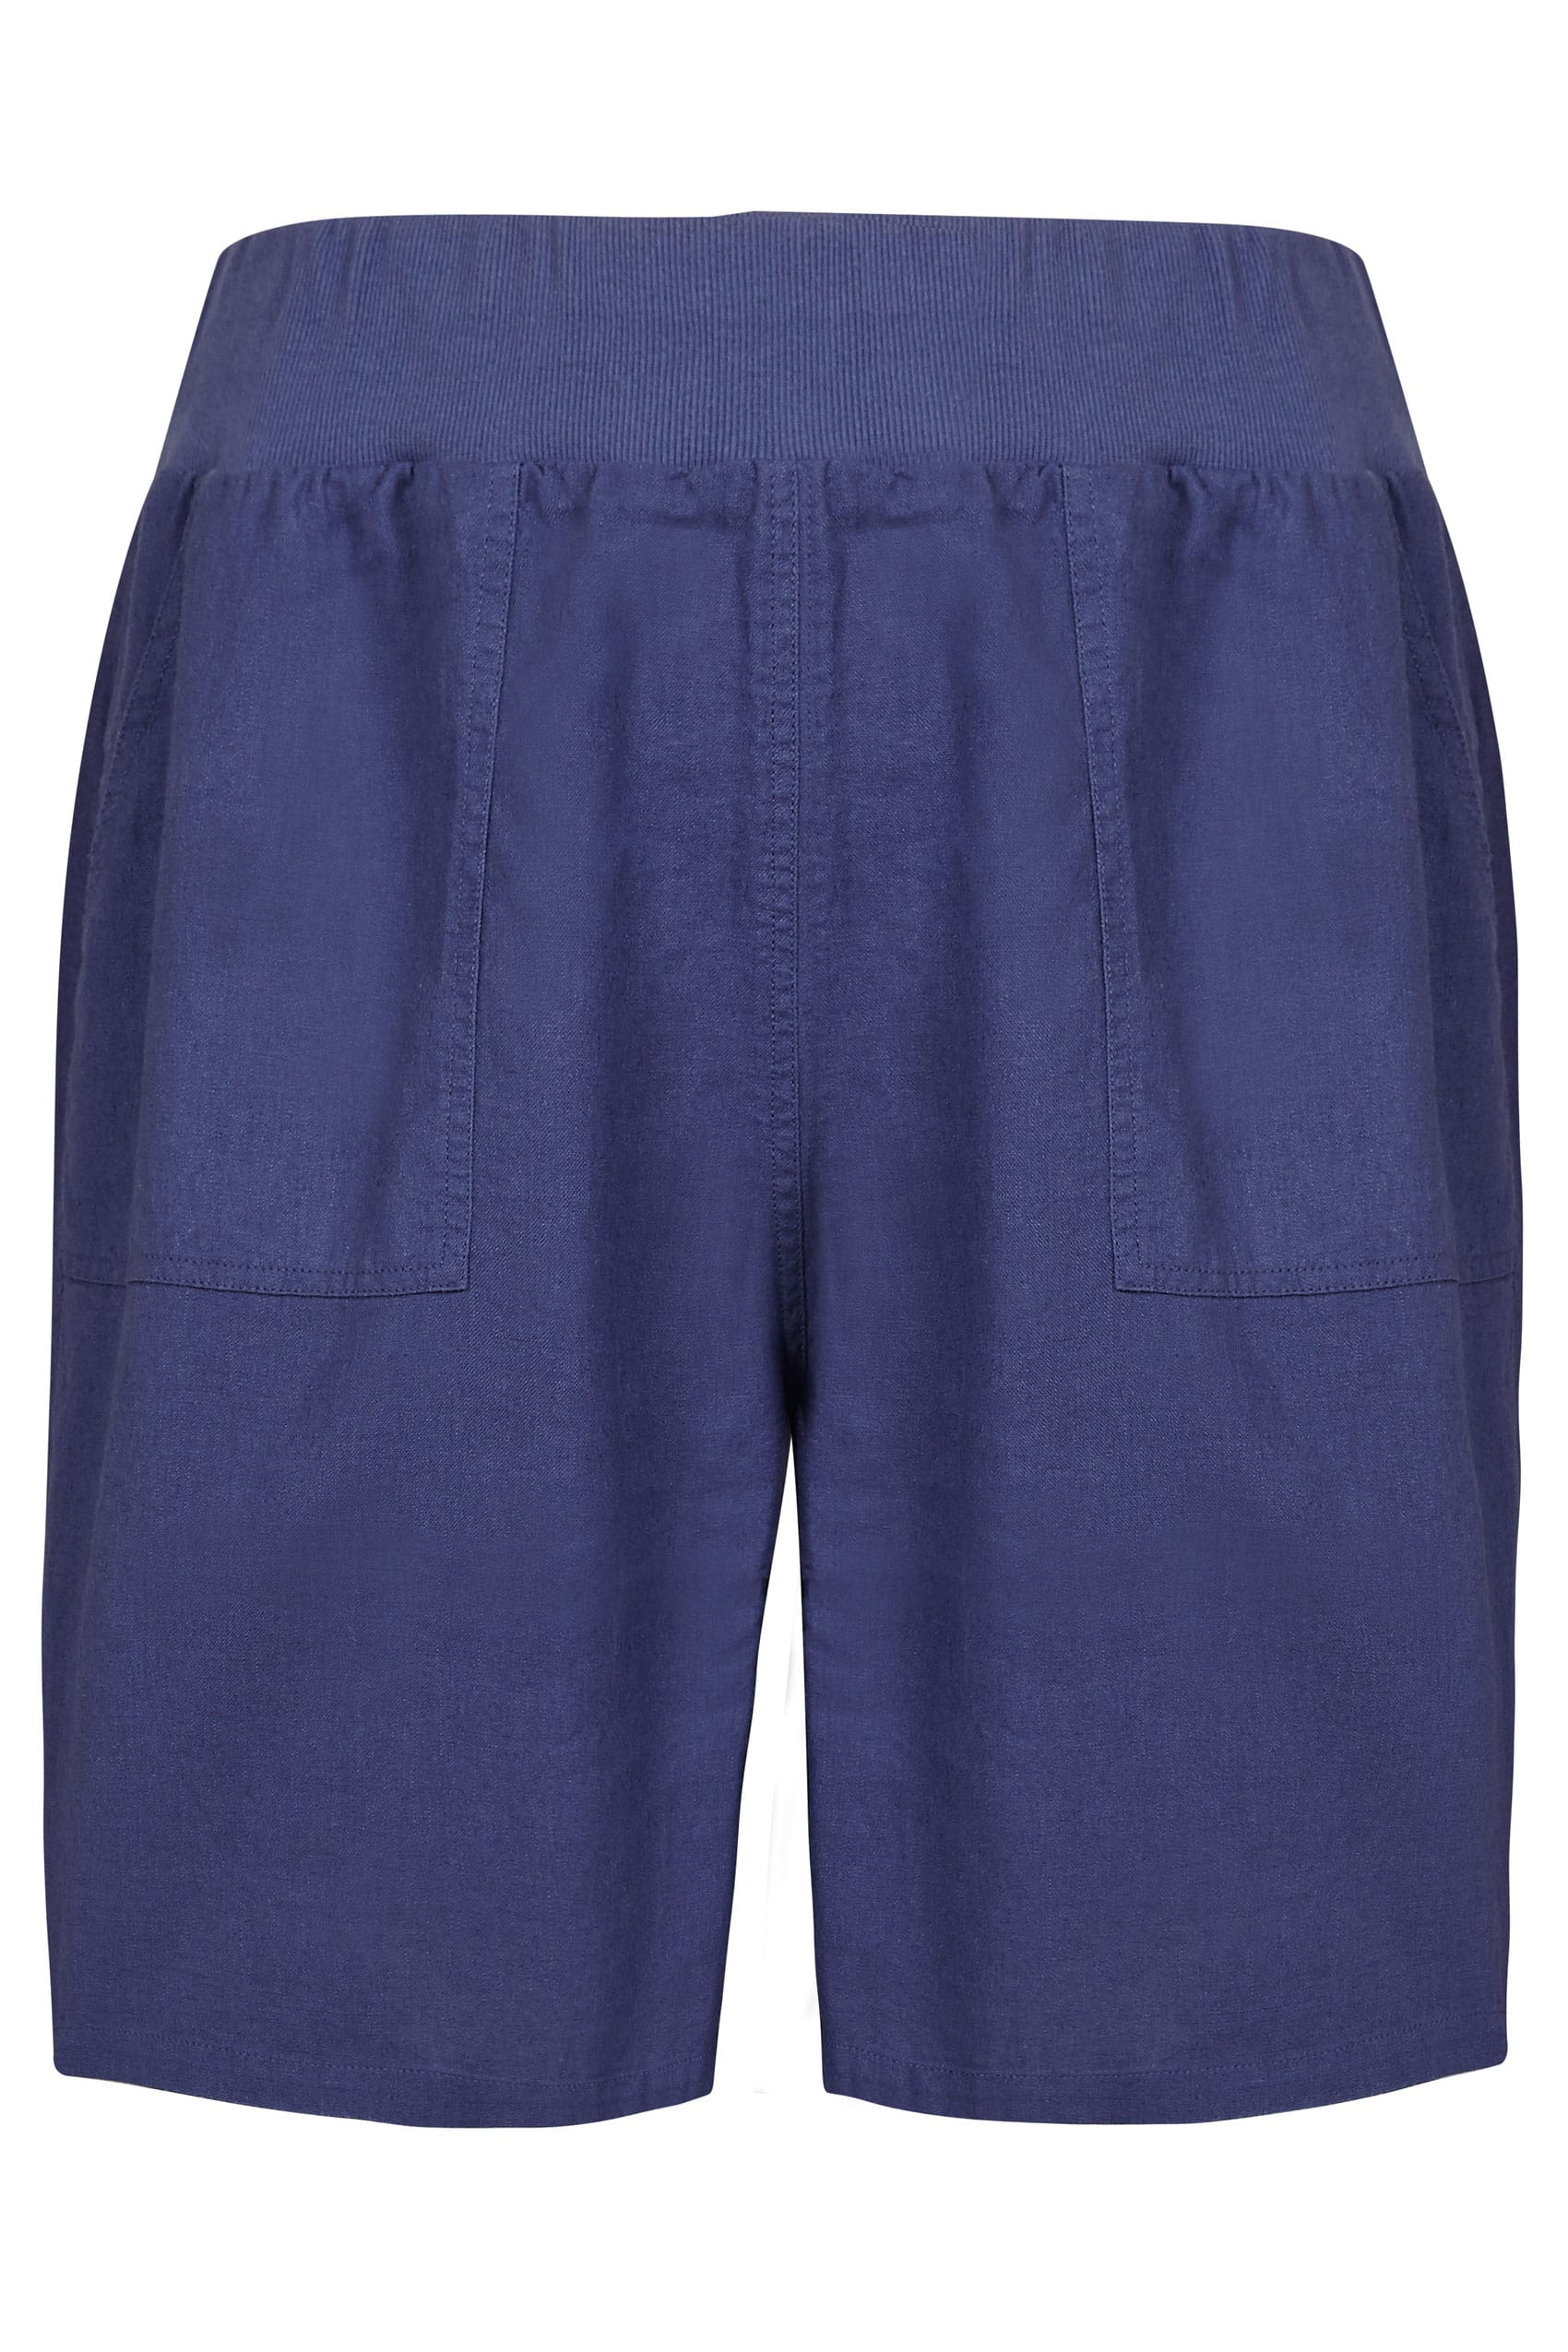 Dark Blue Linen Mix Pull On Shorts With Pockets Plus Size